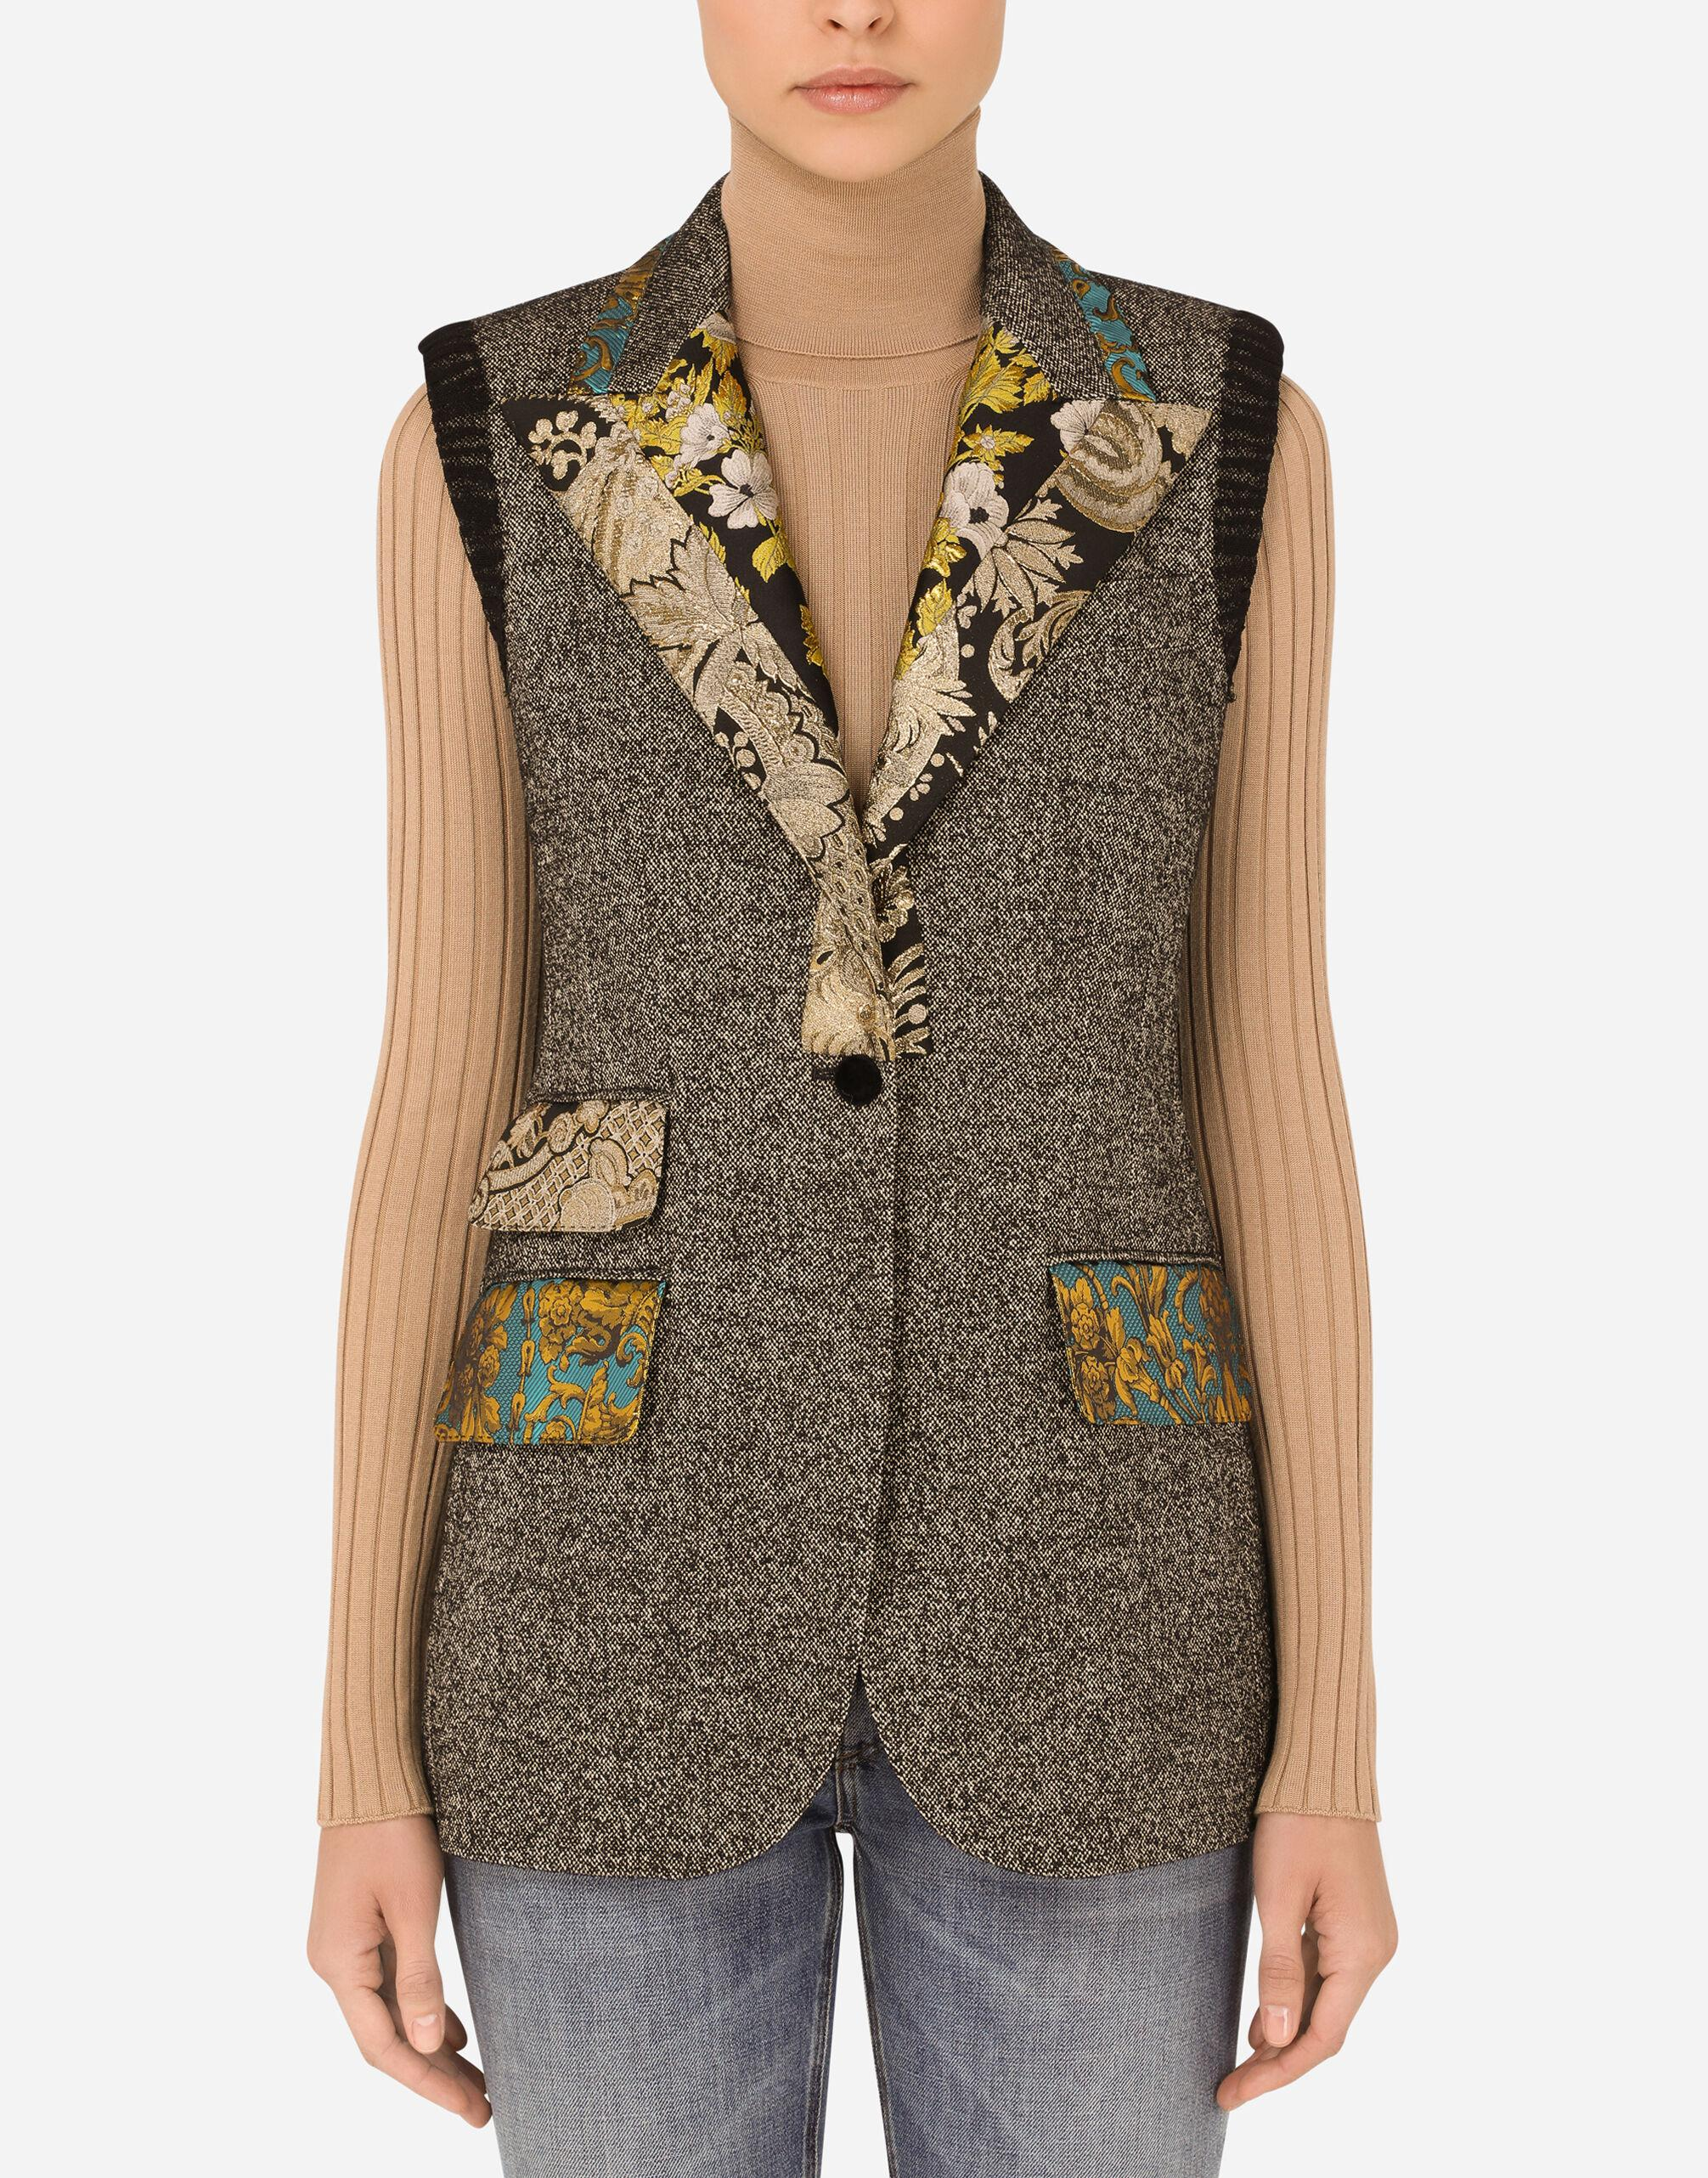 Micro-patterned wool vest with jacquard details